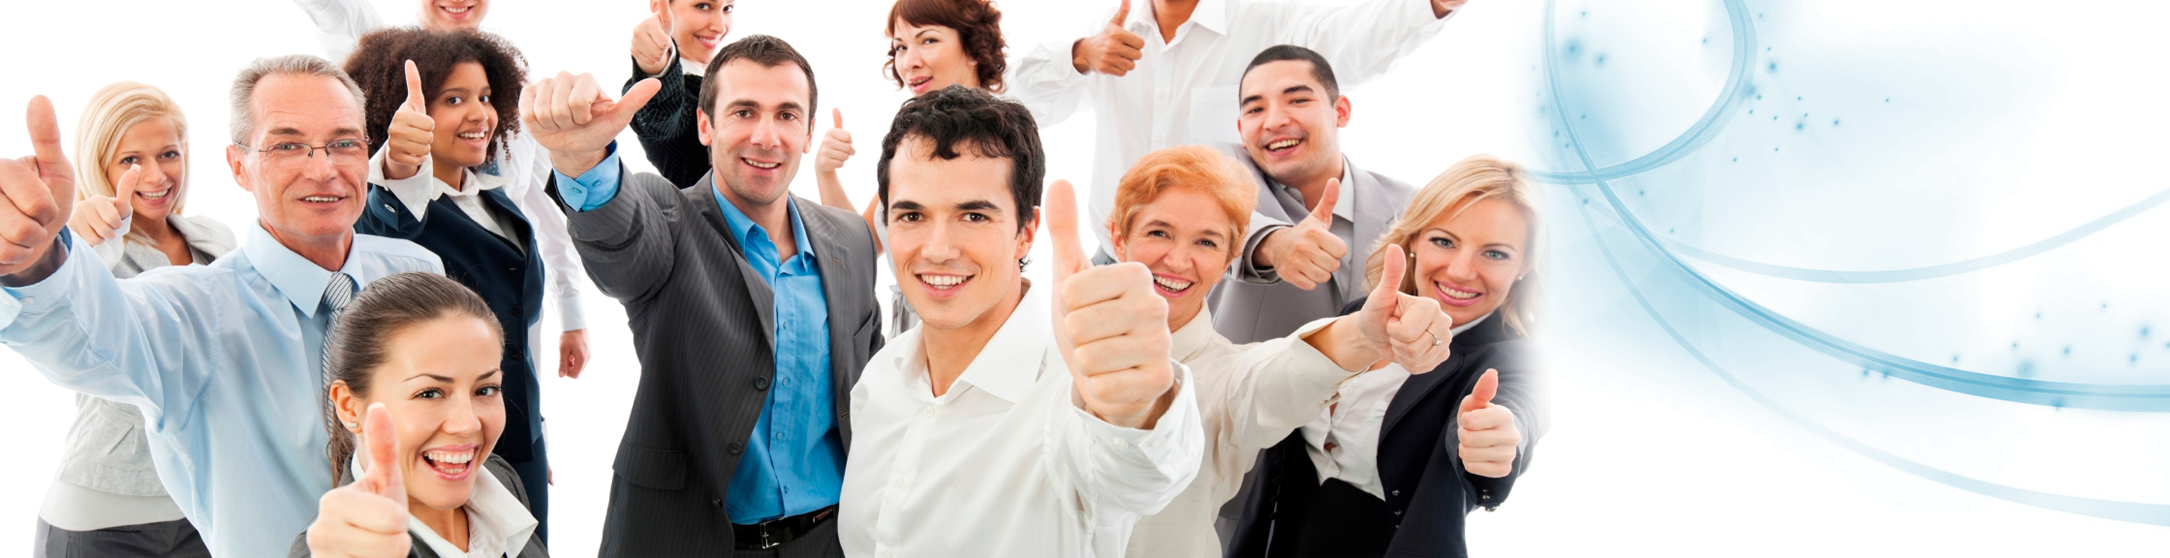 arvind manpower solutions best manpower recruiters from easiest way to your dream job